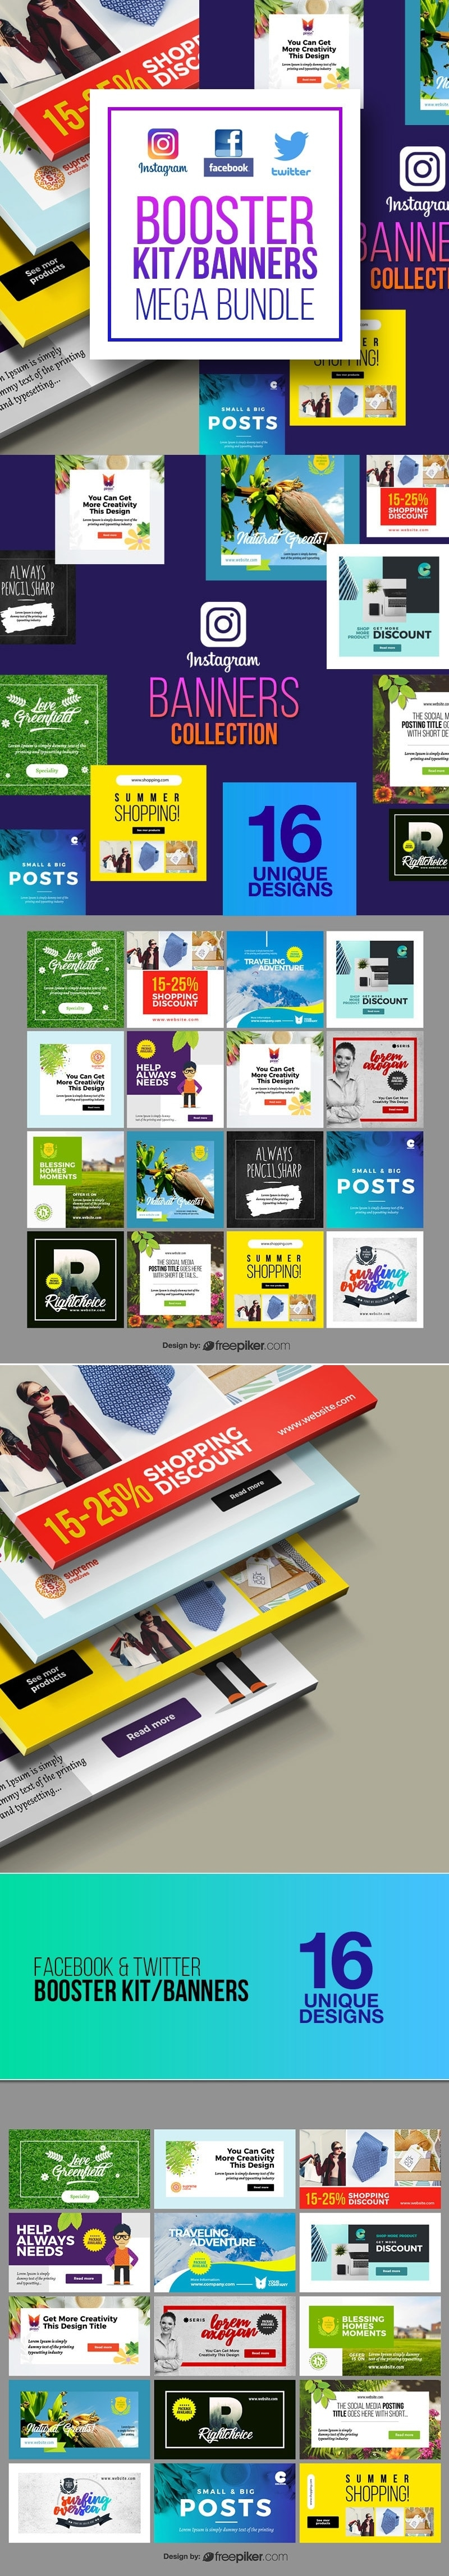 Social Media Booster Banners Collection